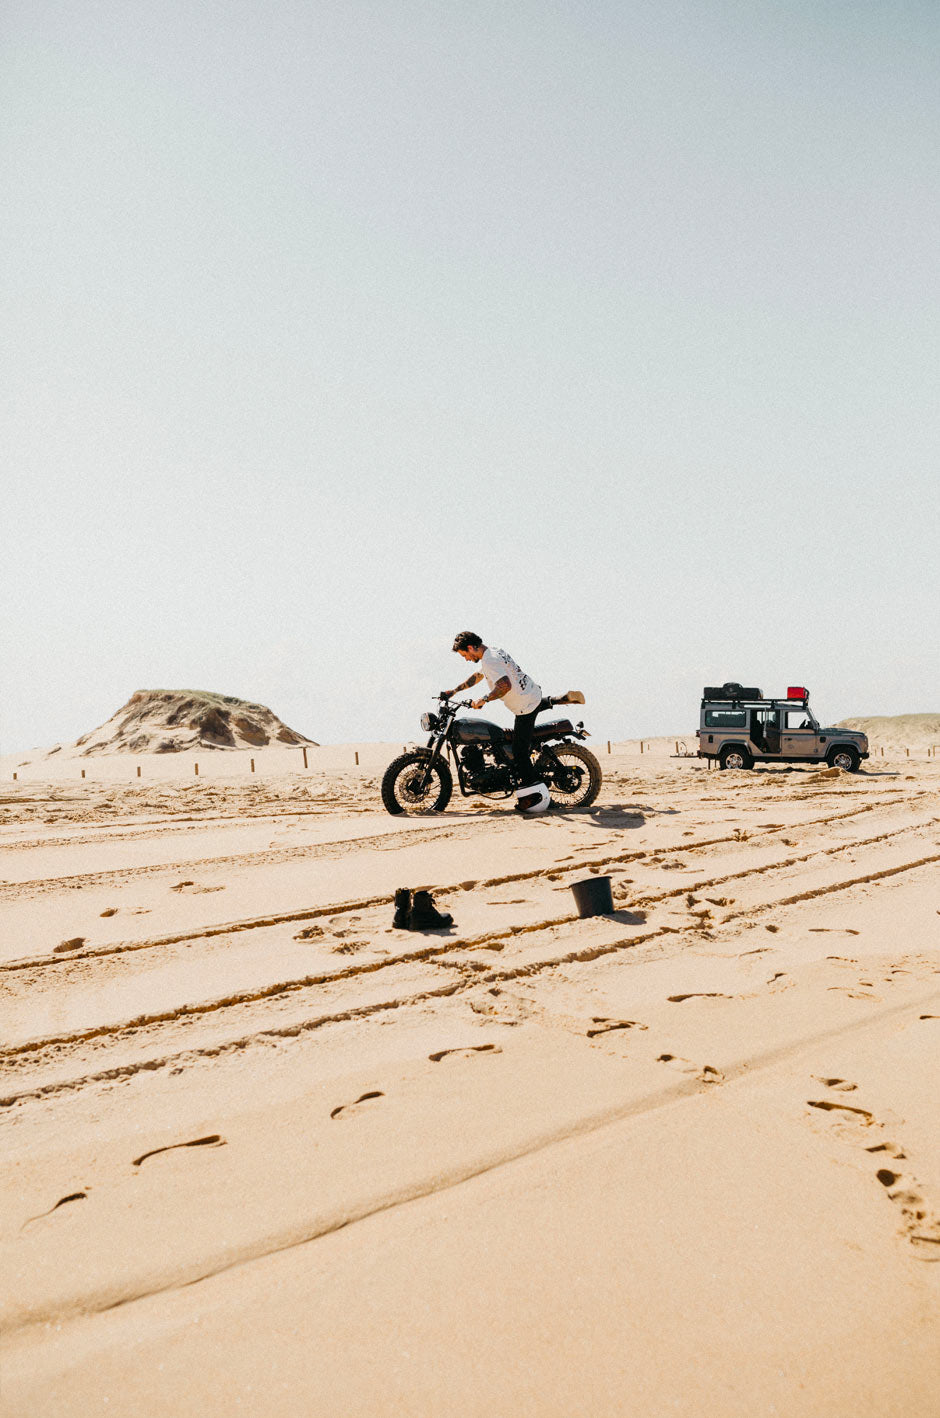 Travelling across australia while wild camping